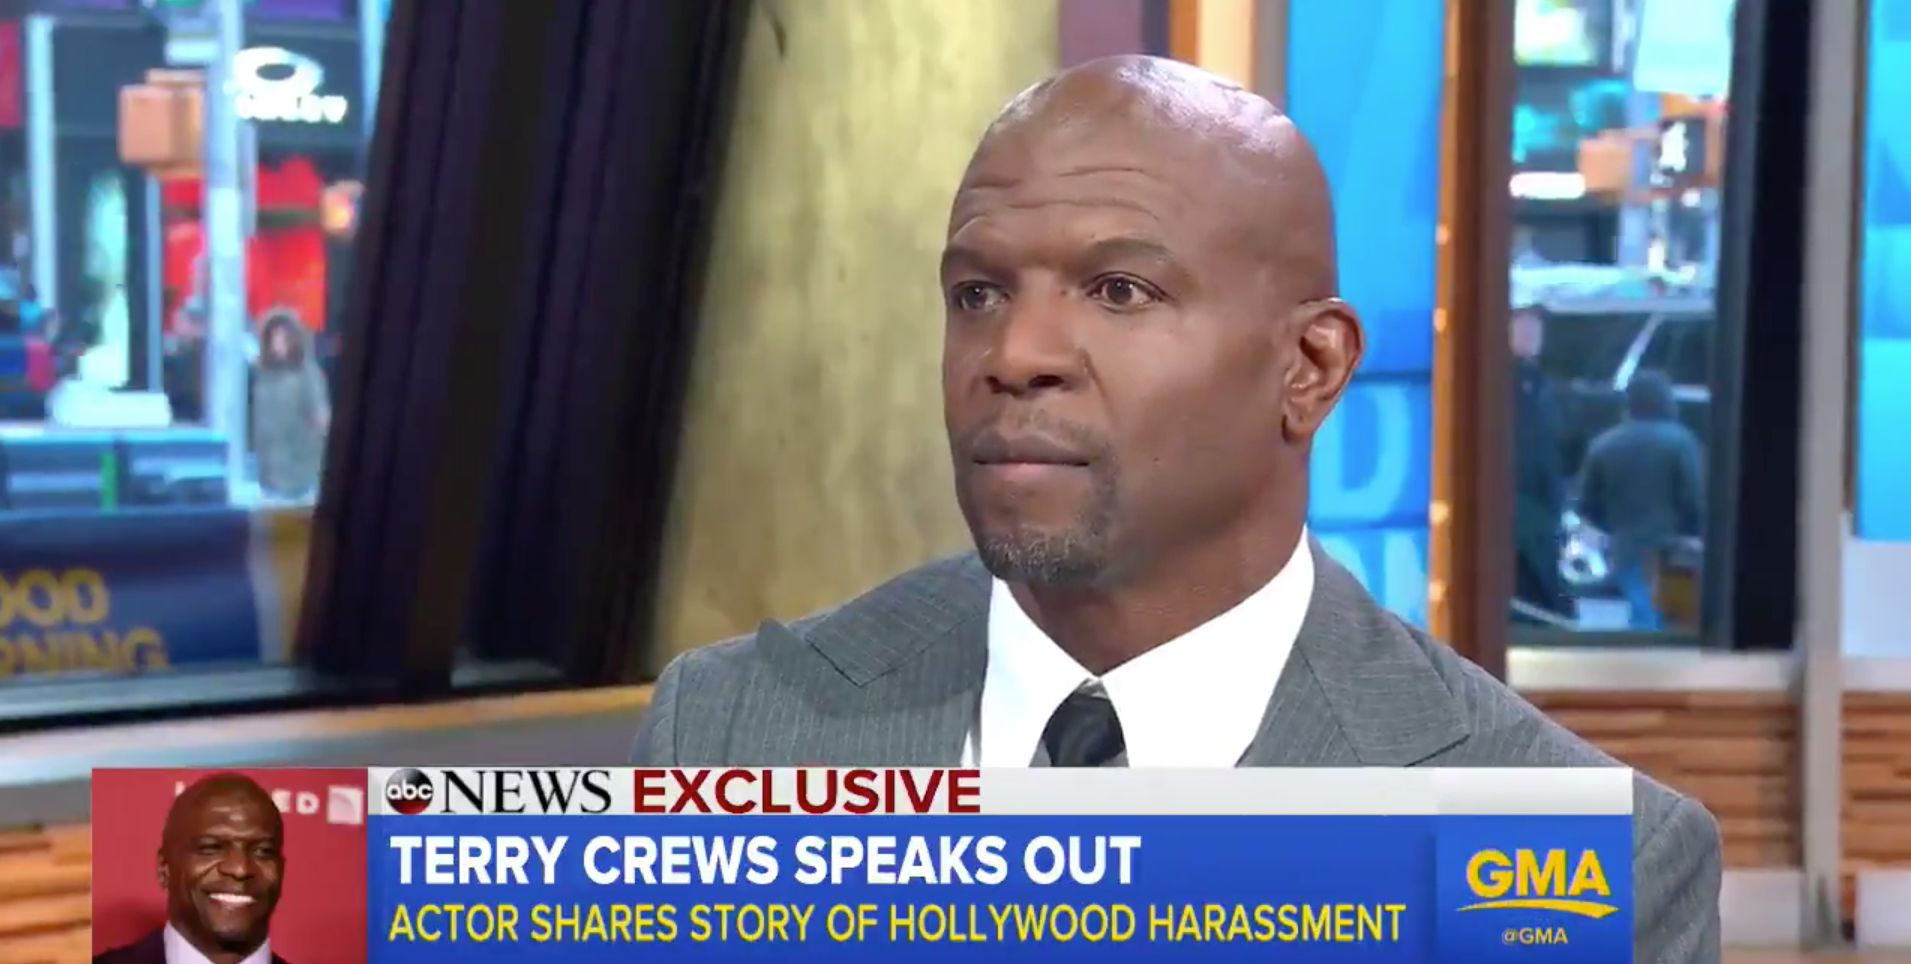 Actor Terry Crews publicly called out the man he says sexually harassed him at a Hollywood party last